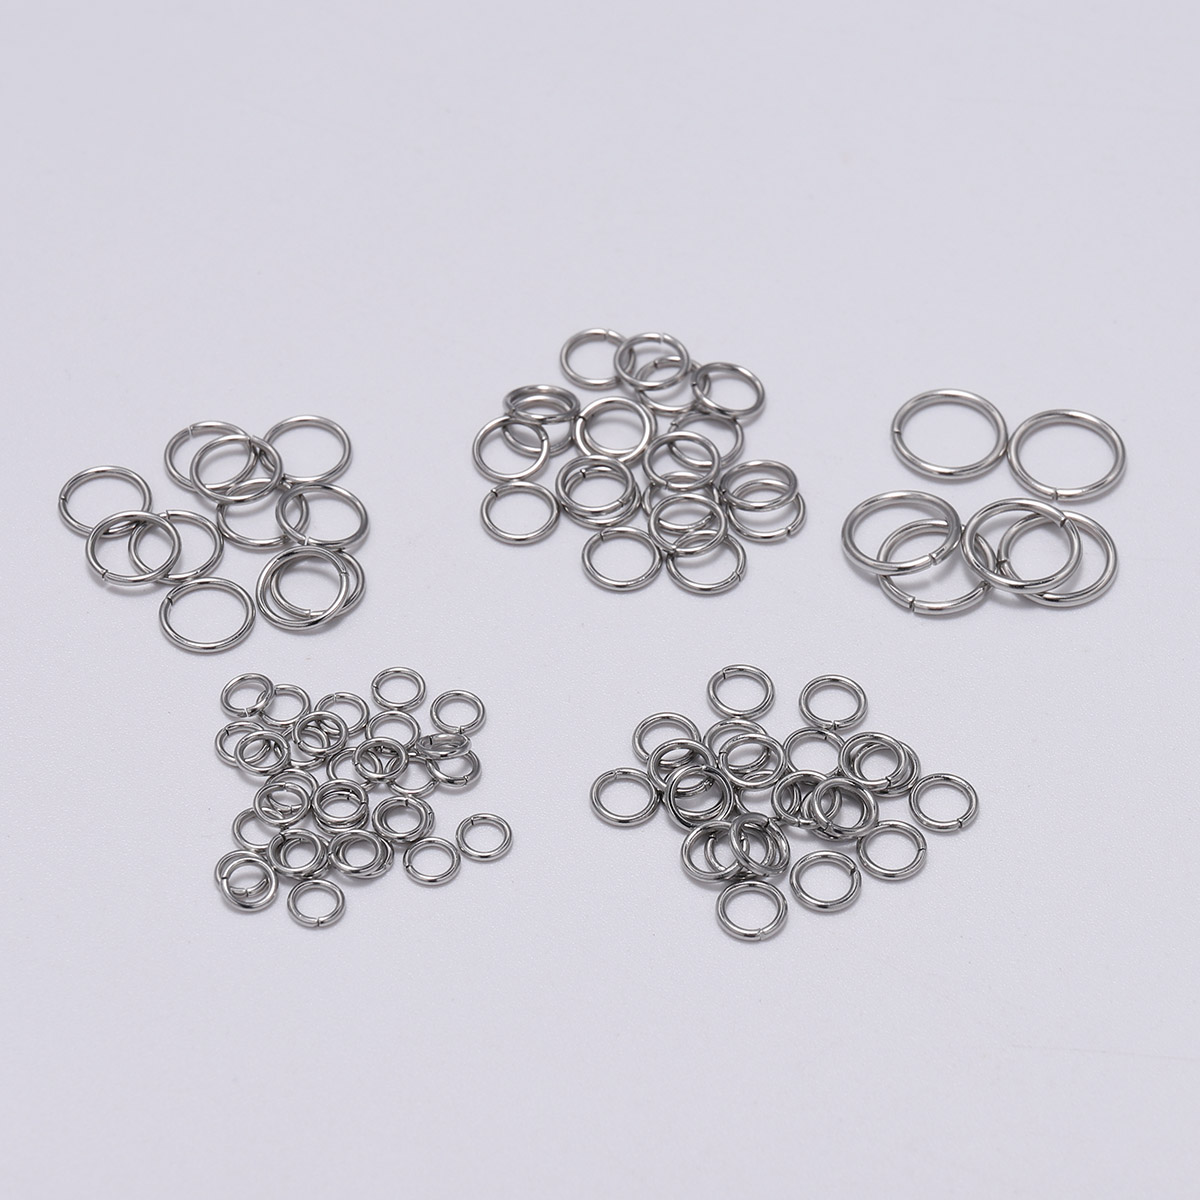 200pcs 3-15mm Diameter Stainless Steel Open Single Loops Jump Rings Split Ring For Jewelry Making DIY Connector Made Accessories